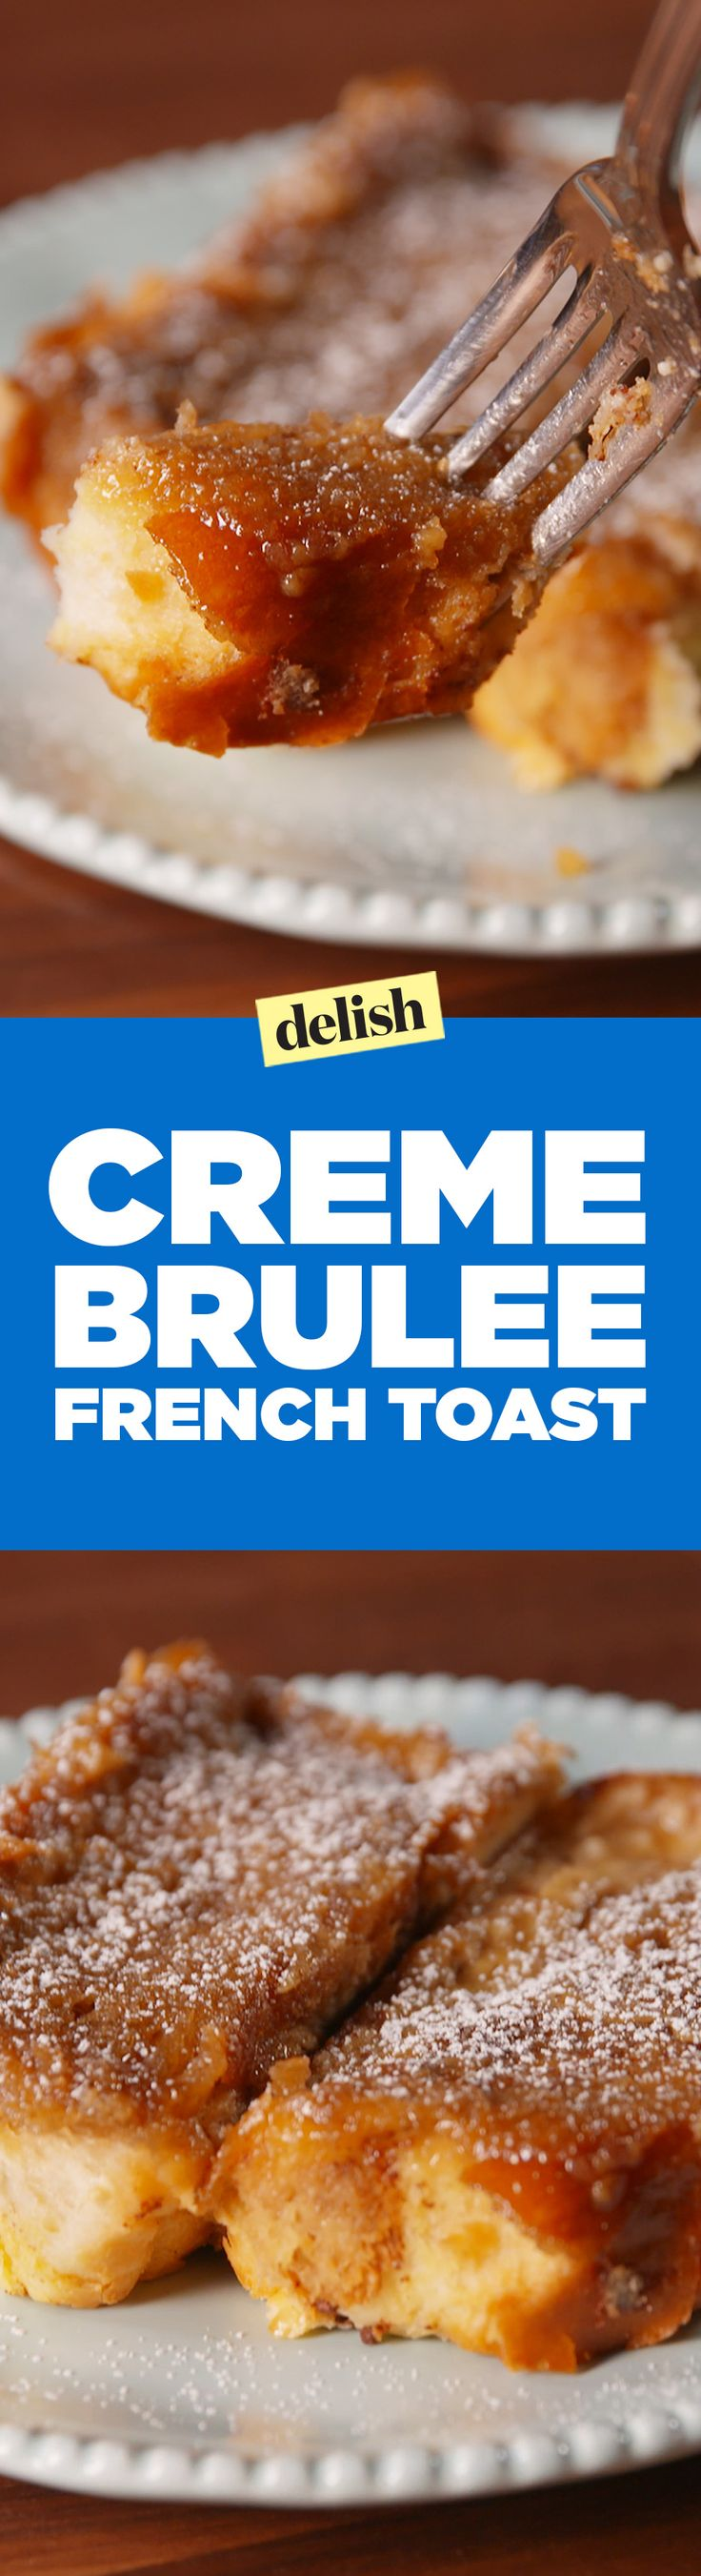 You don't even need a blow torch for this creme brulee french toast. Get the recipe on Delish.com.